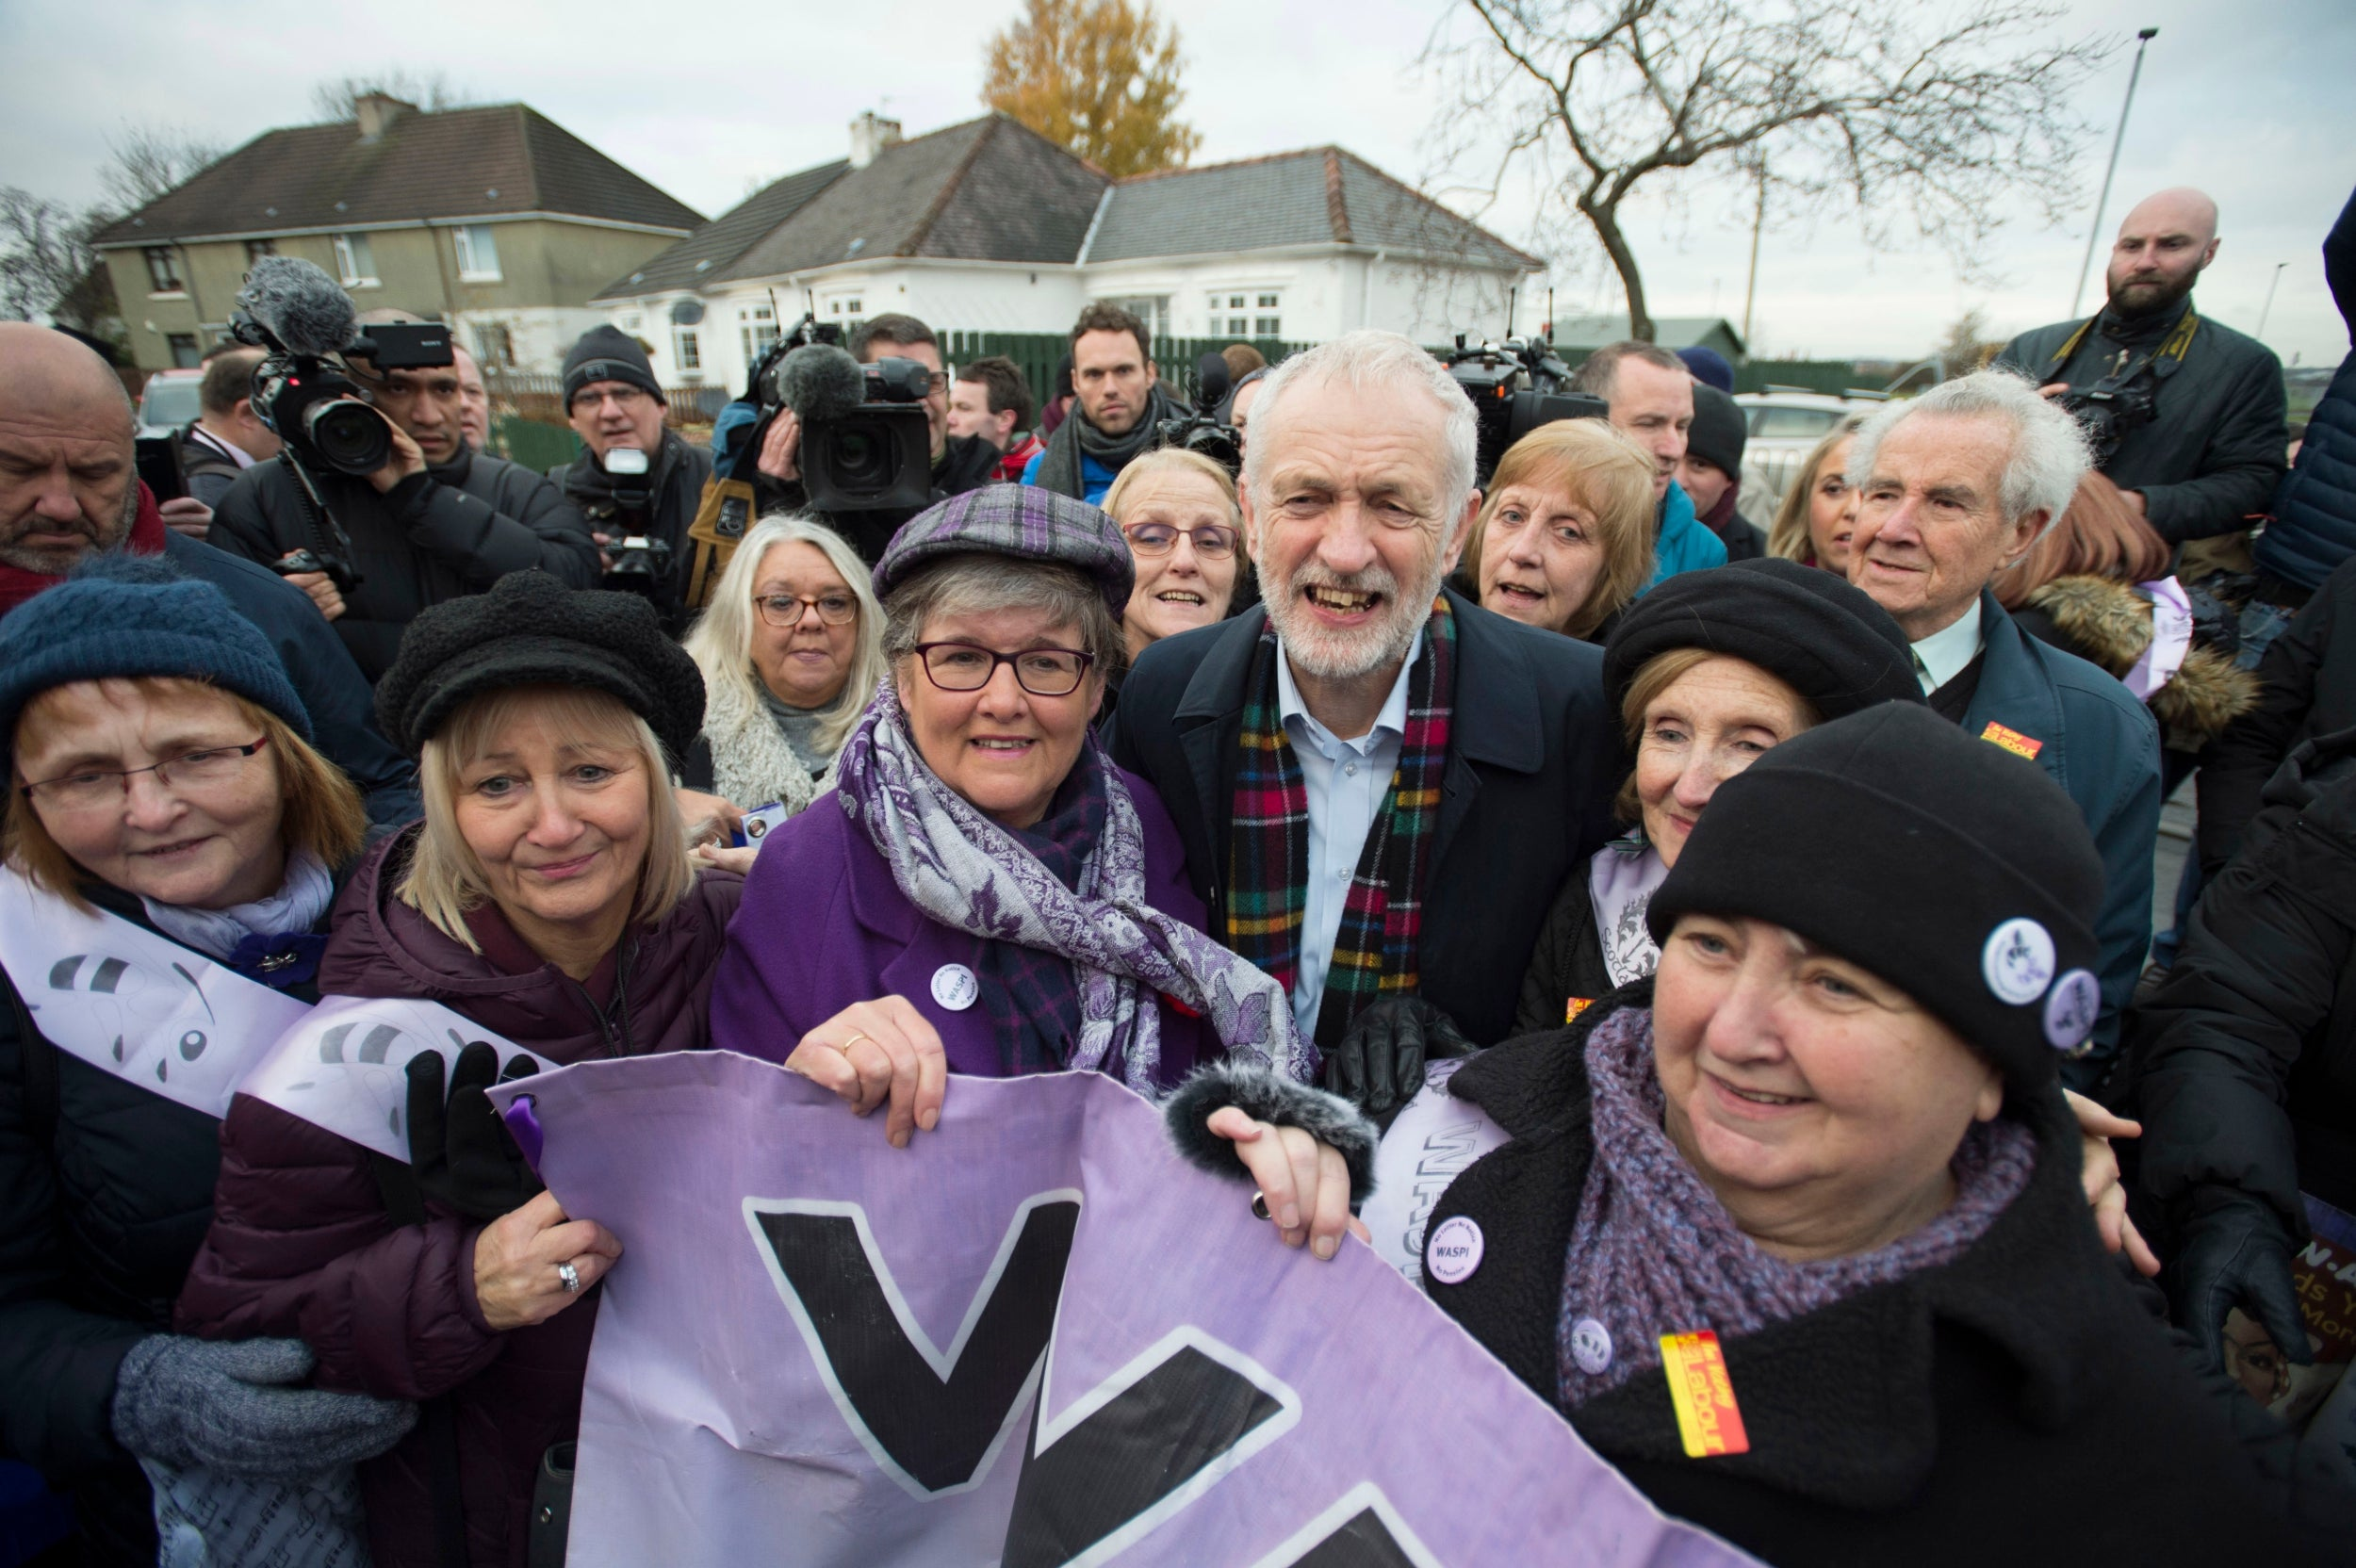 Corbyn refuses to apologise for nationalisation plans: 'It's the norm in European countries'